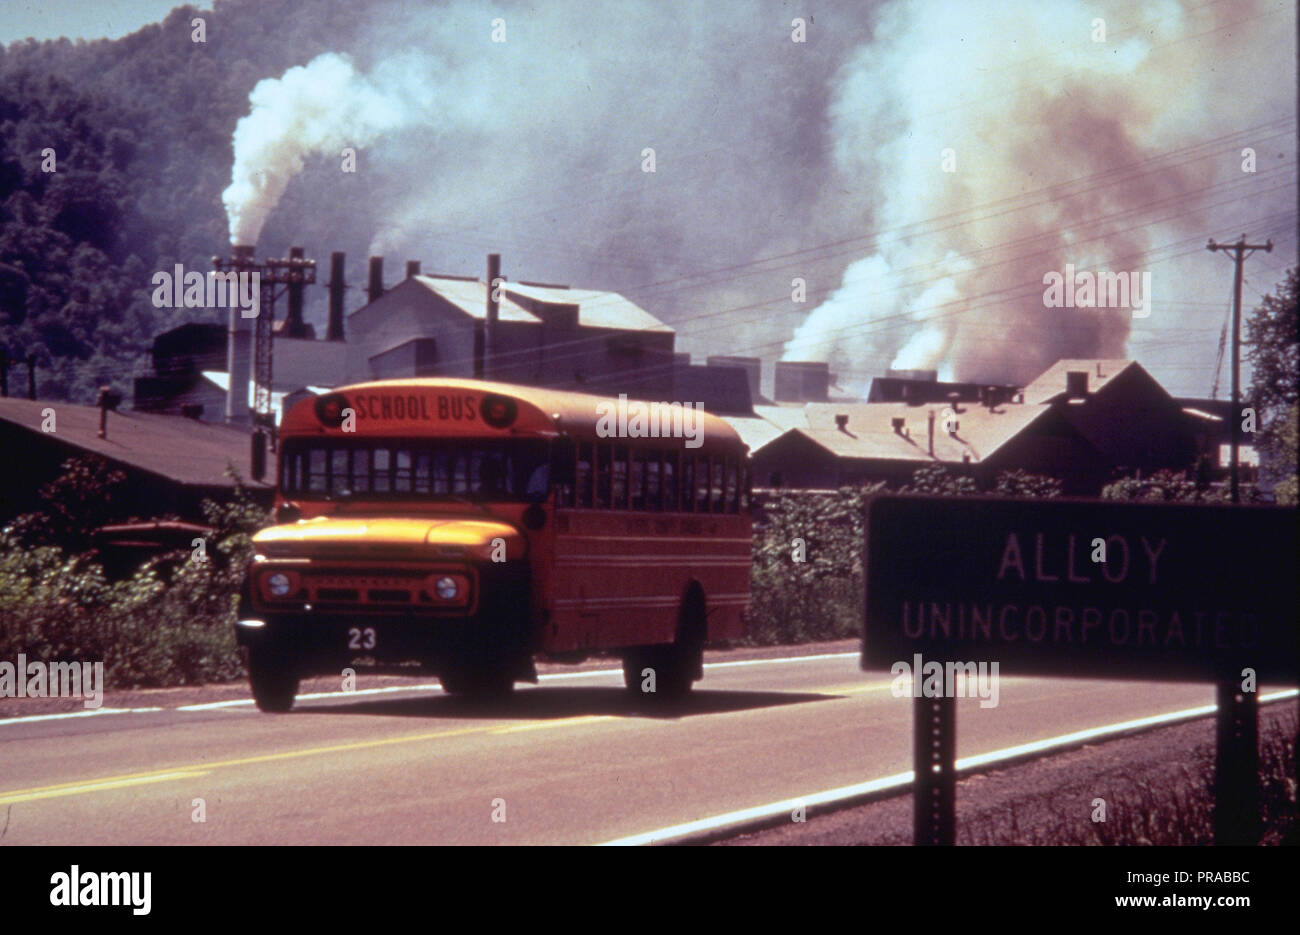 ca. 1998-1999 - school bus driving down road in front of polluting factory (possibly Alloy, West Virginia) - Stock Image